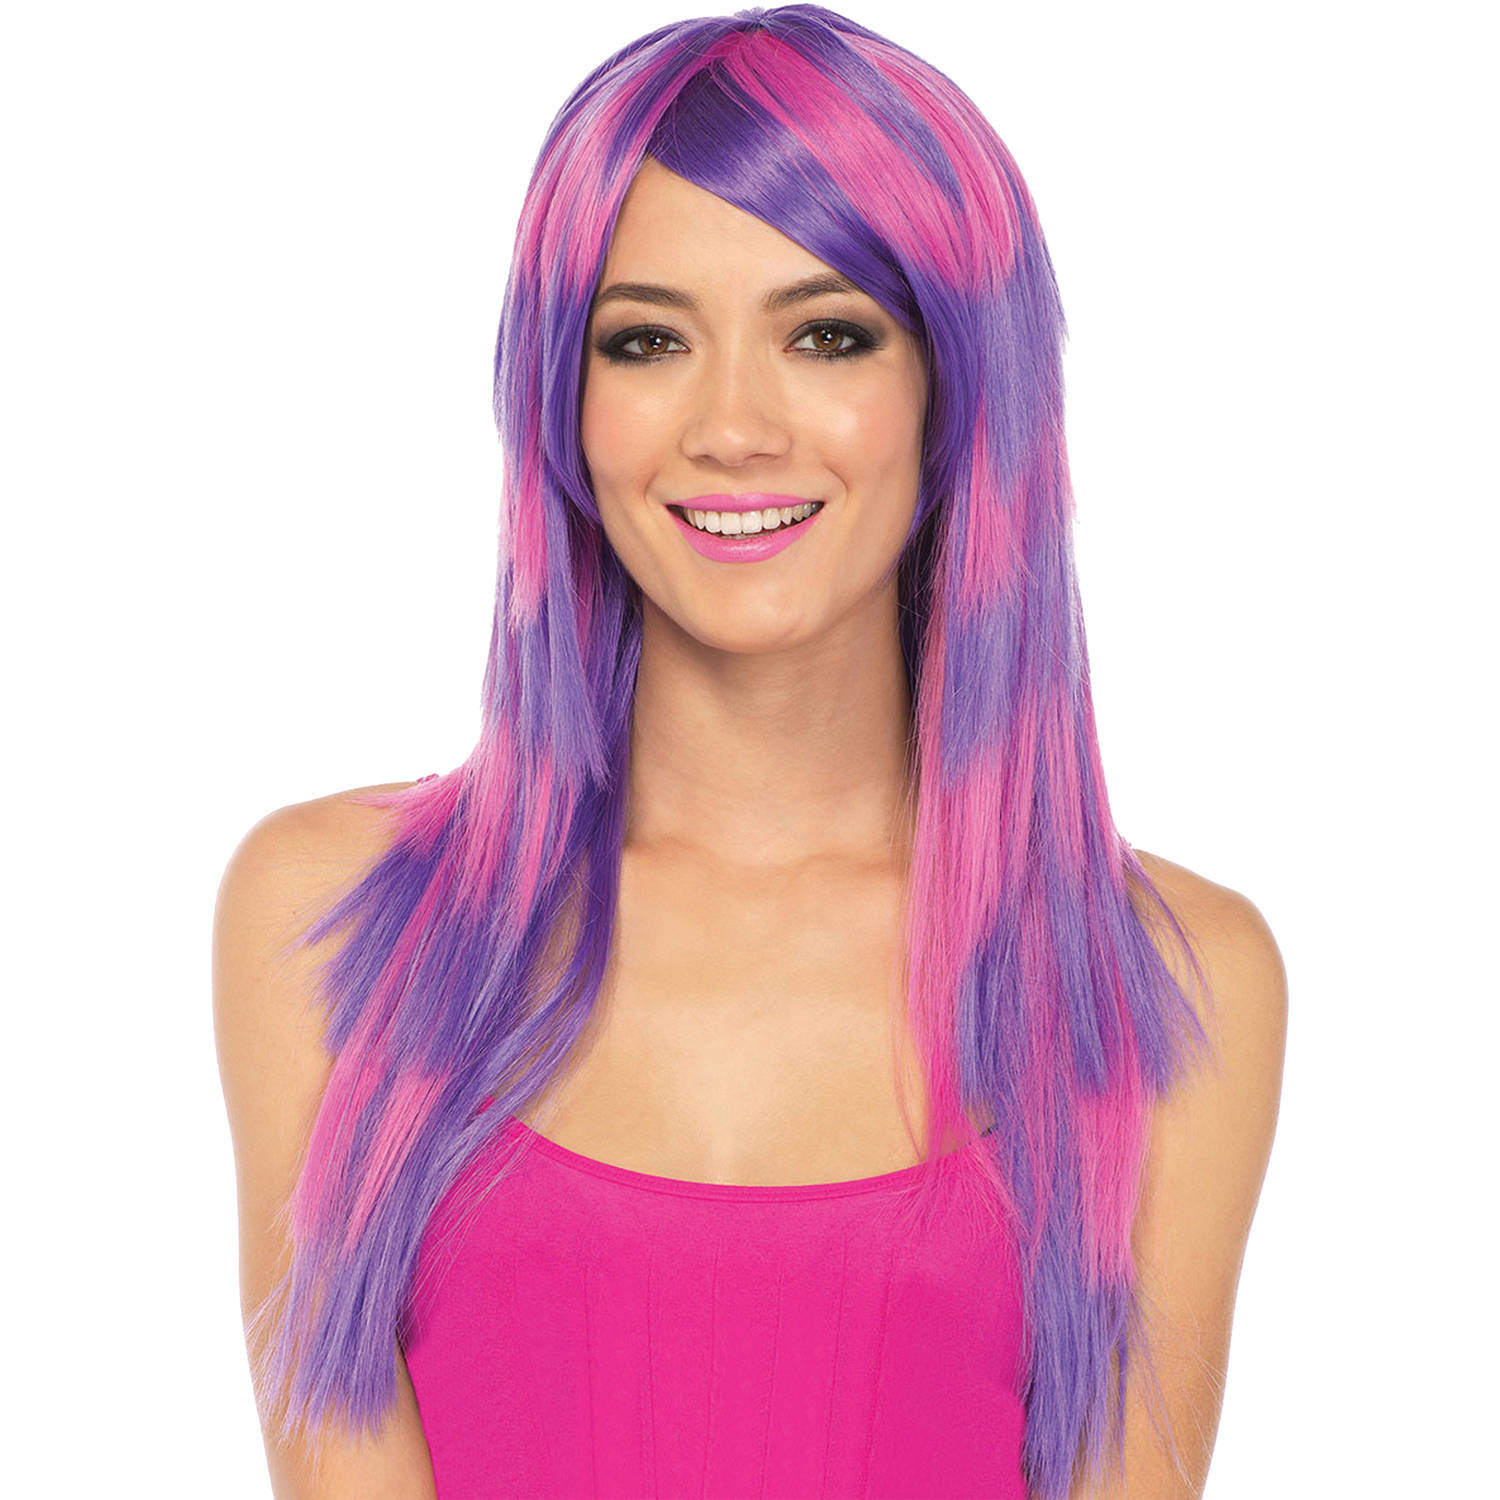 Cheshire Cat Striped Long Wig Adult Halloween Accessory